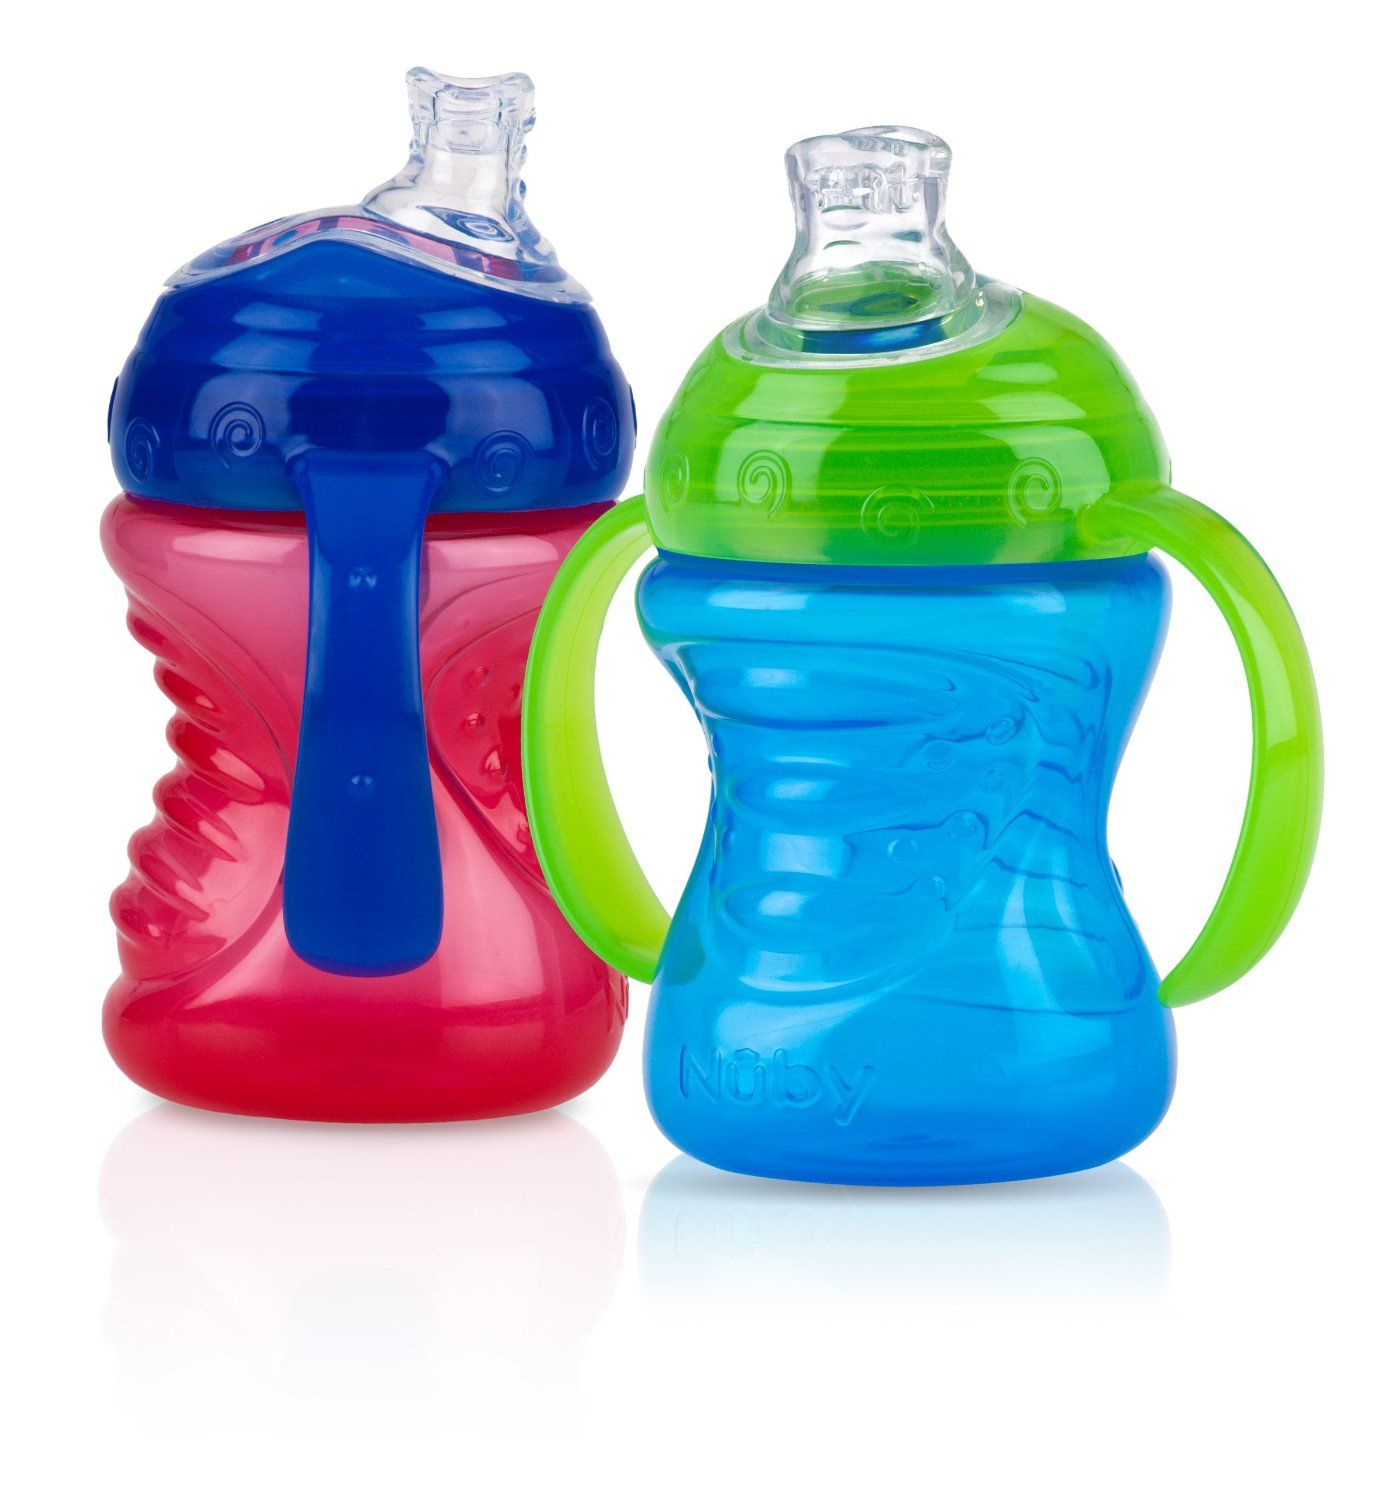 The Best Sippy Cups For Every Age Baby Food Nuby Sippy